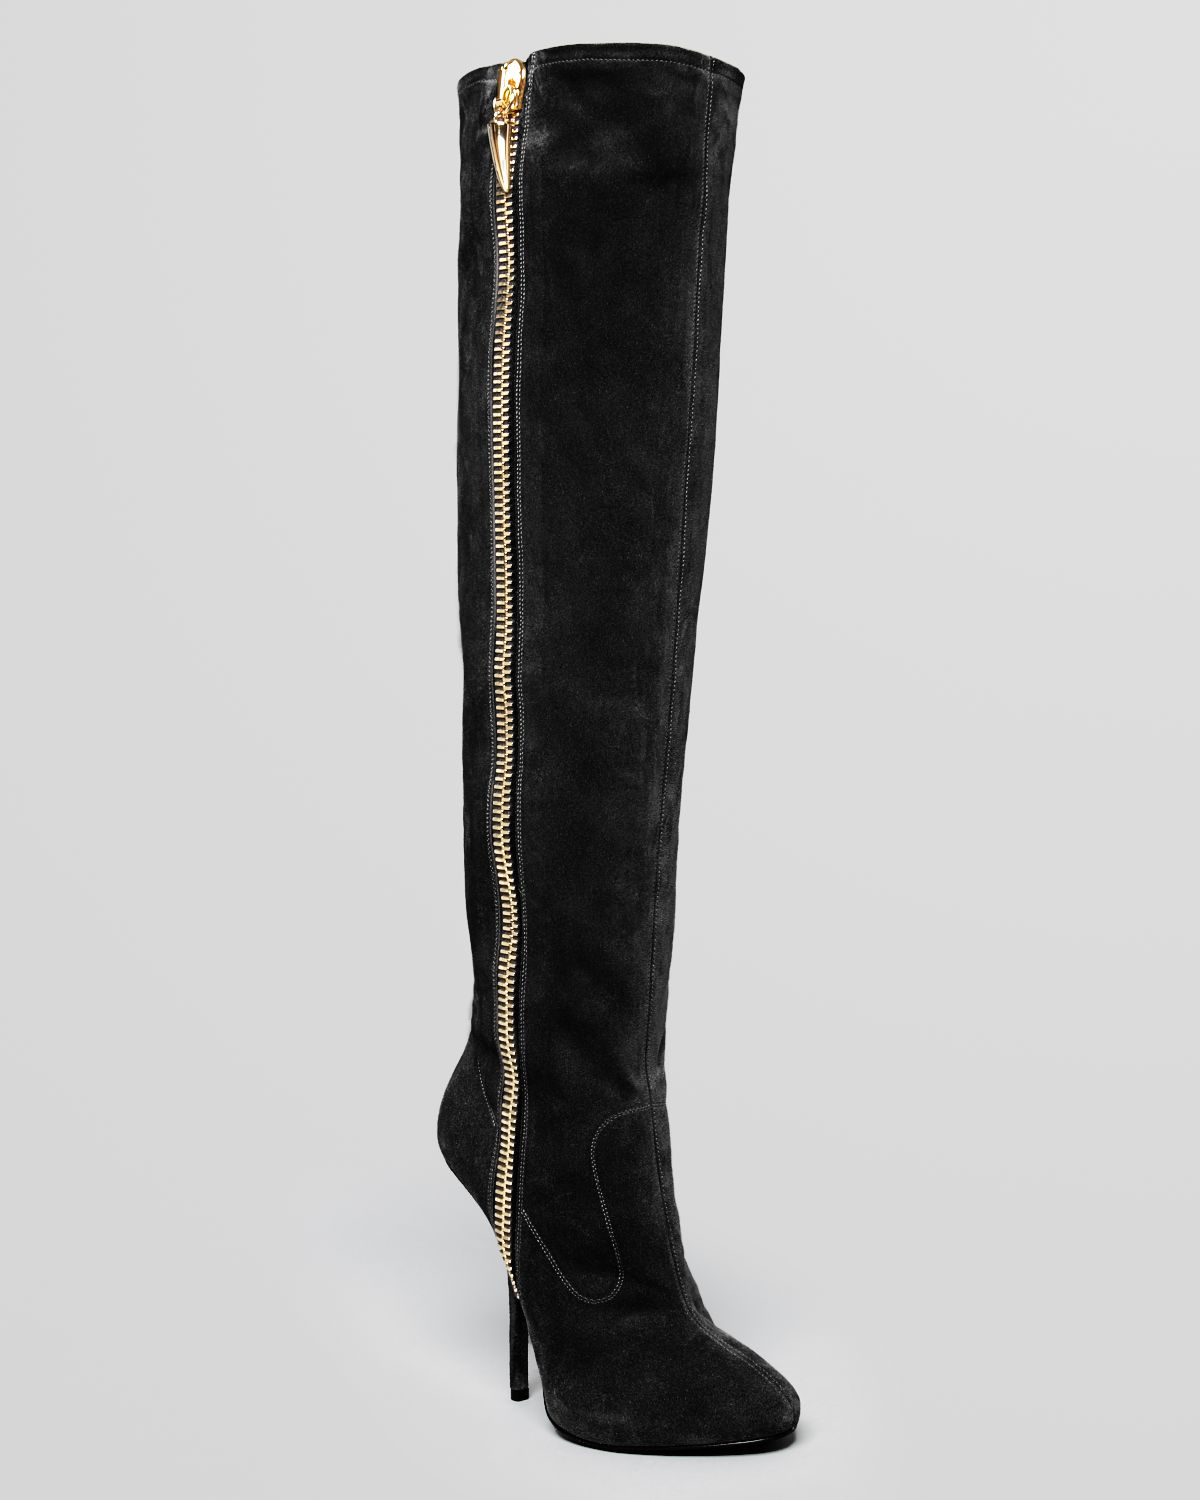 Find great deals on eBay for thigh high over the knee boots. Shop with confidence.